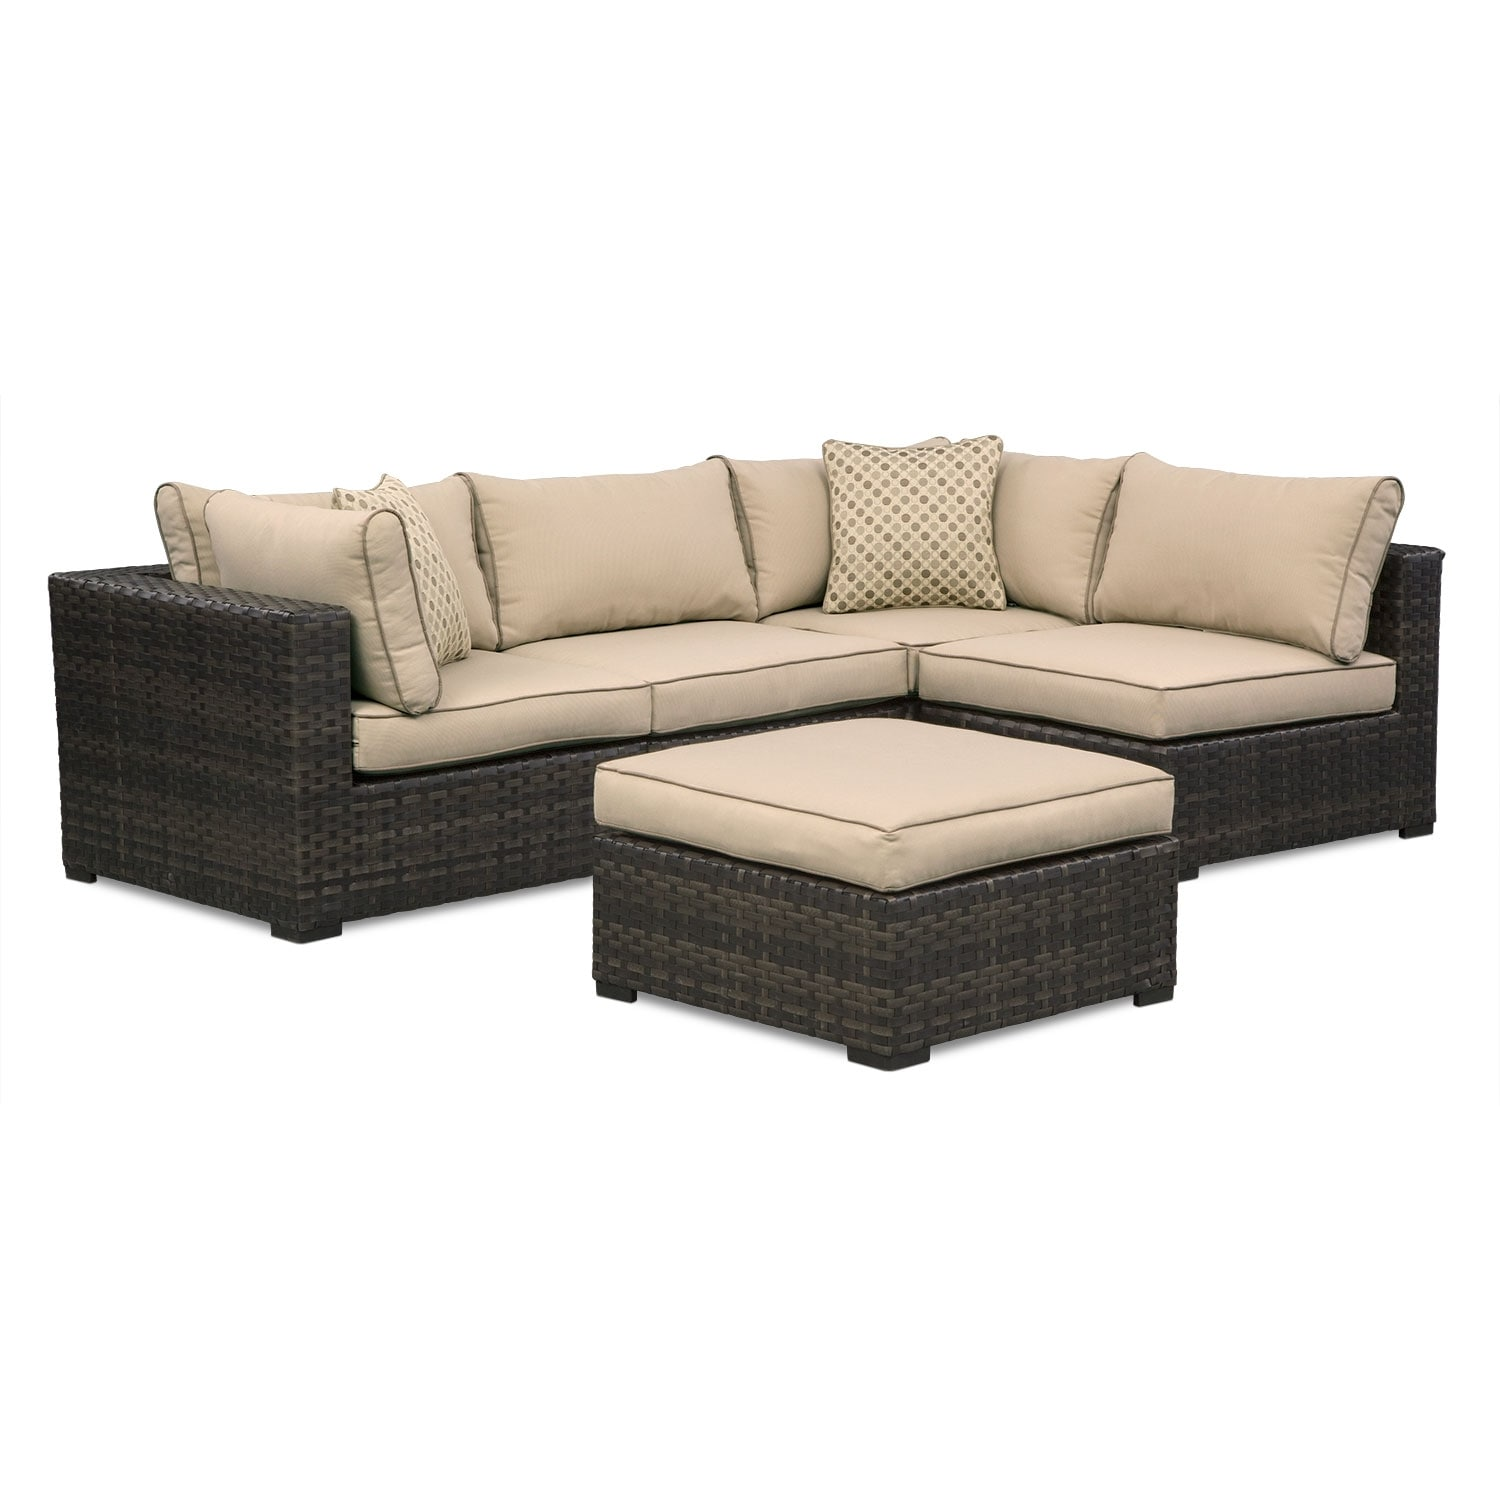 Regatta 4 Pc. Outdoor Sectional and Ottoman